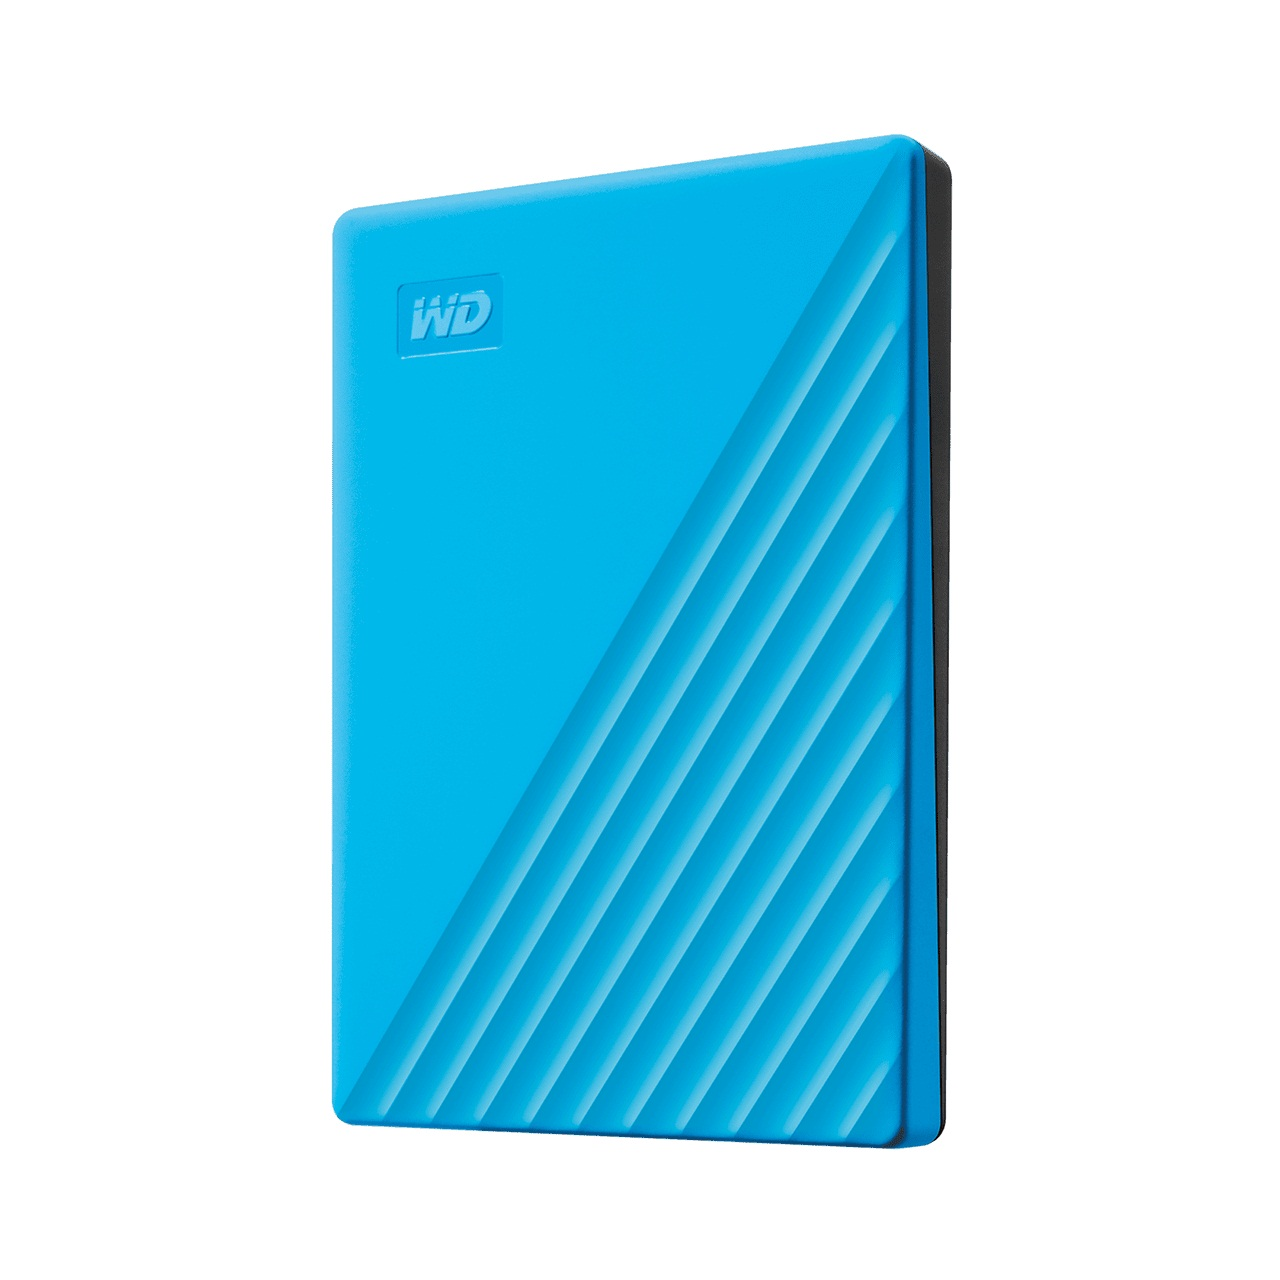 Western-Digital-WD-1TB-My-Passport-2020-3-2-Portable-Hard-Drive-HDD-All-Color-DI thumbnail 8